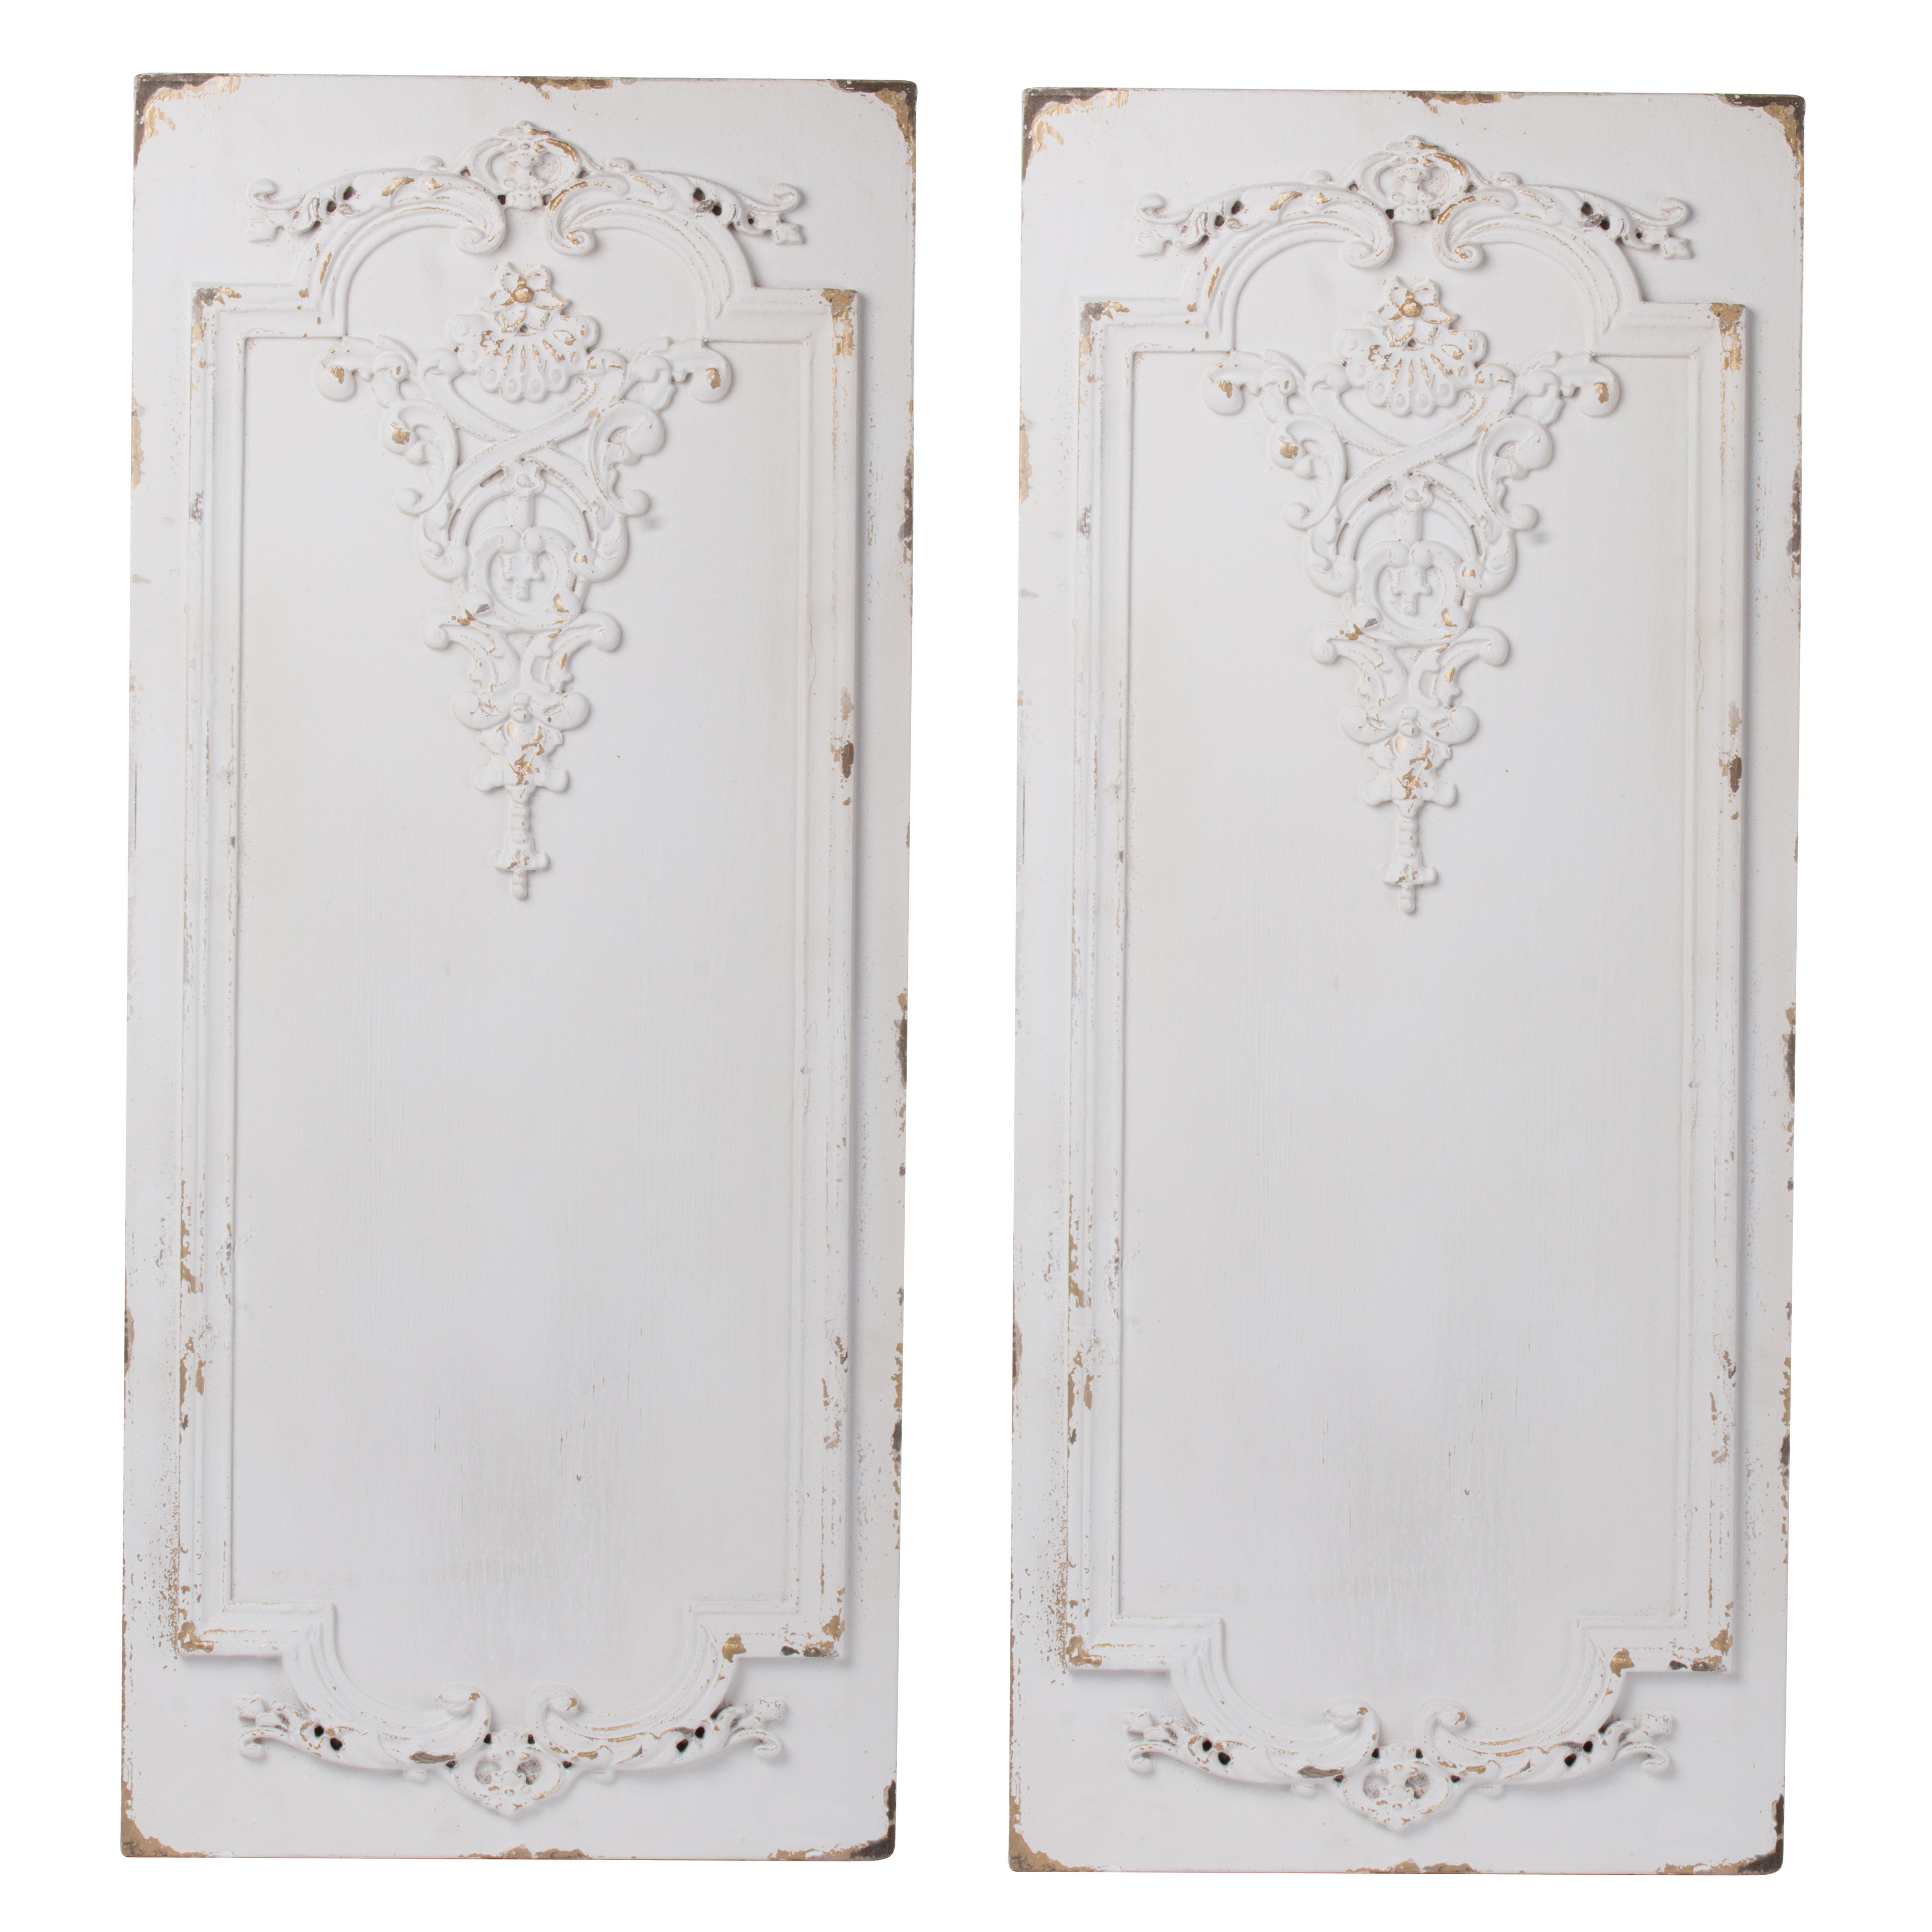 2 Piece Wall Decor Set | Wayfair throughout 2 Piece Starburst Wall Decor Sets (Image 8 of 30)